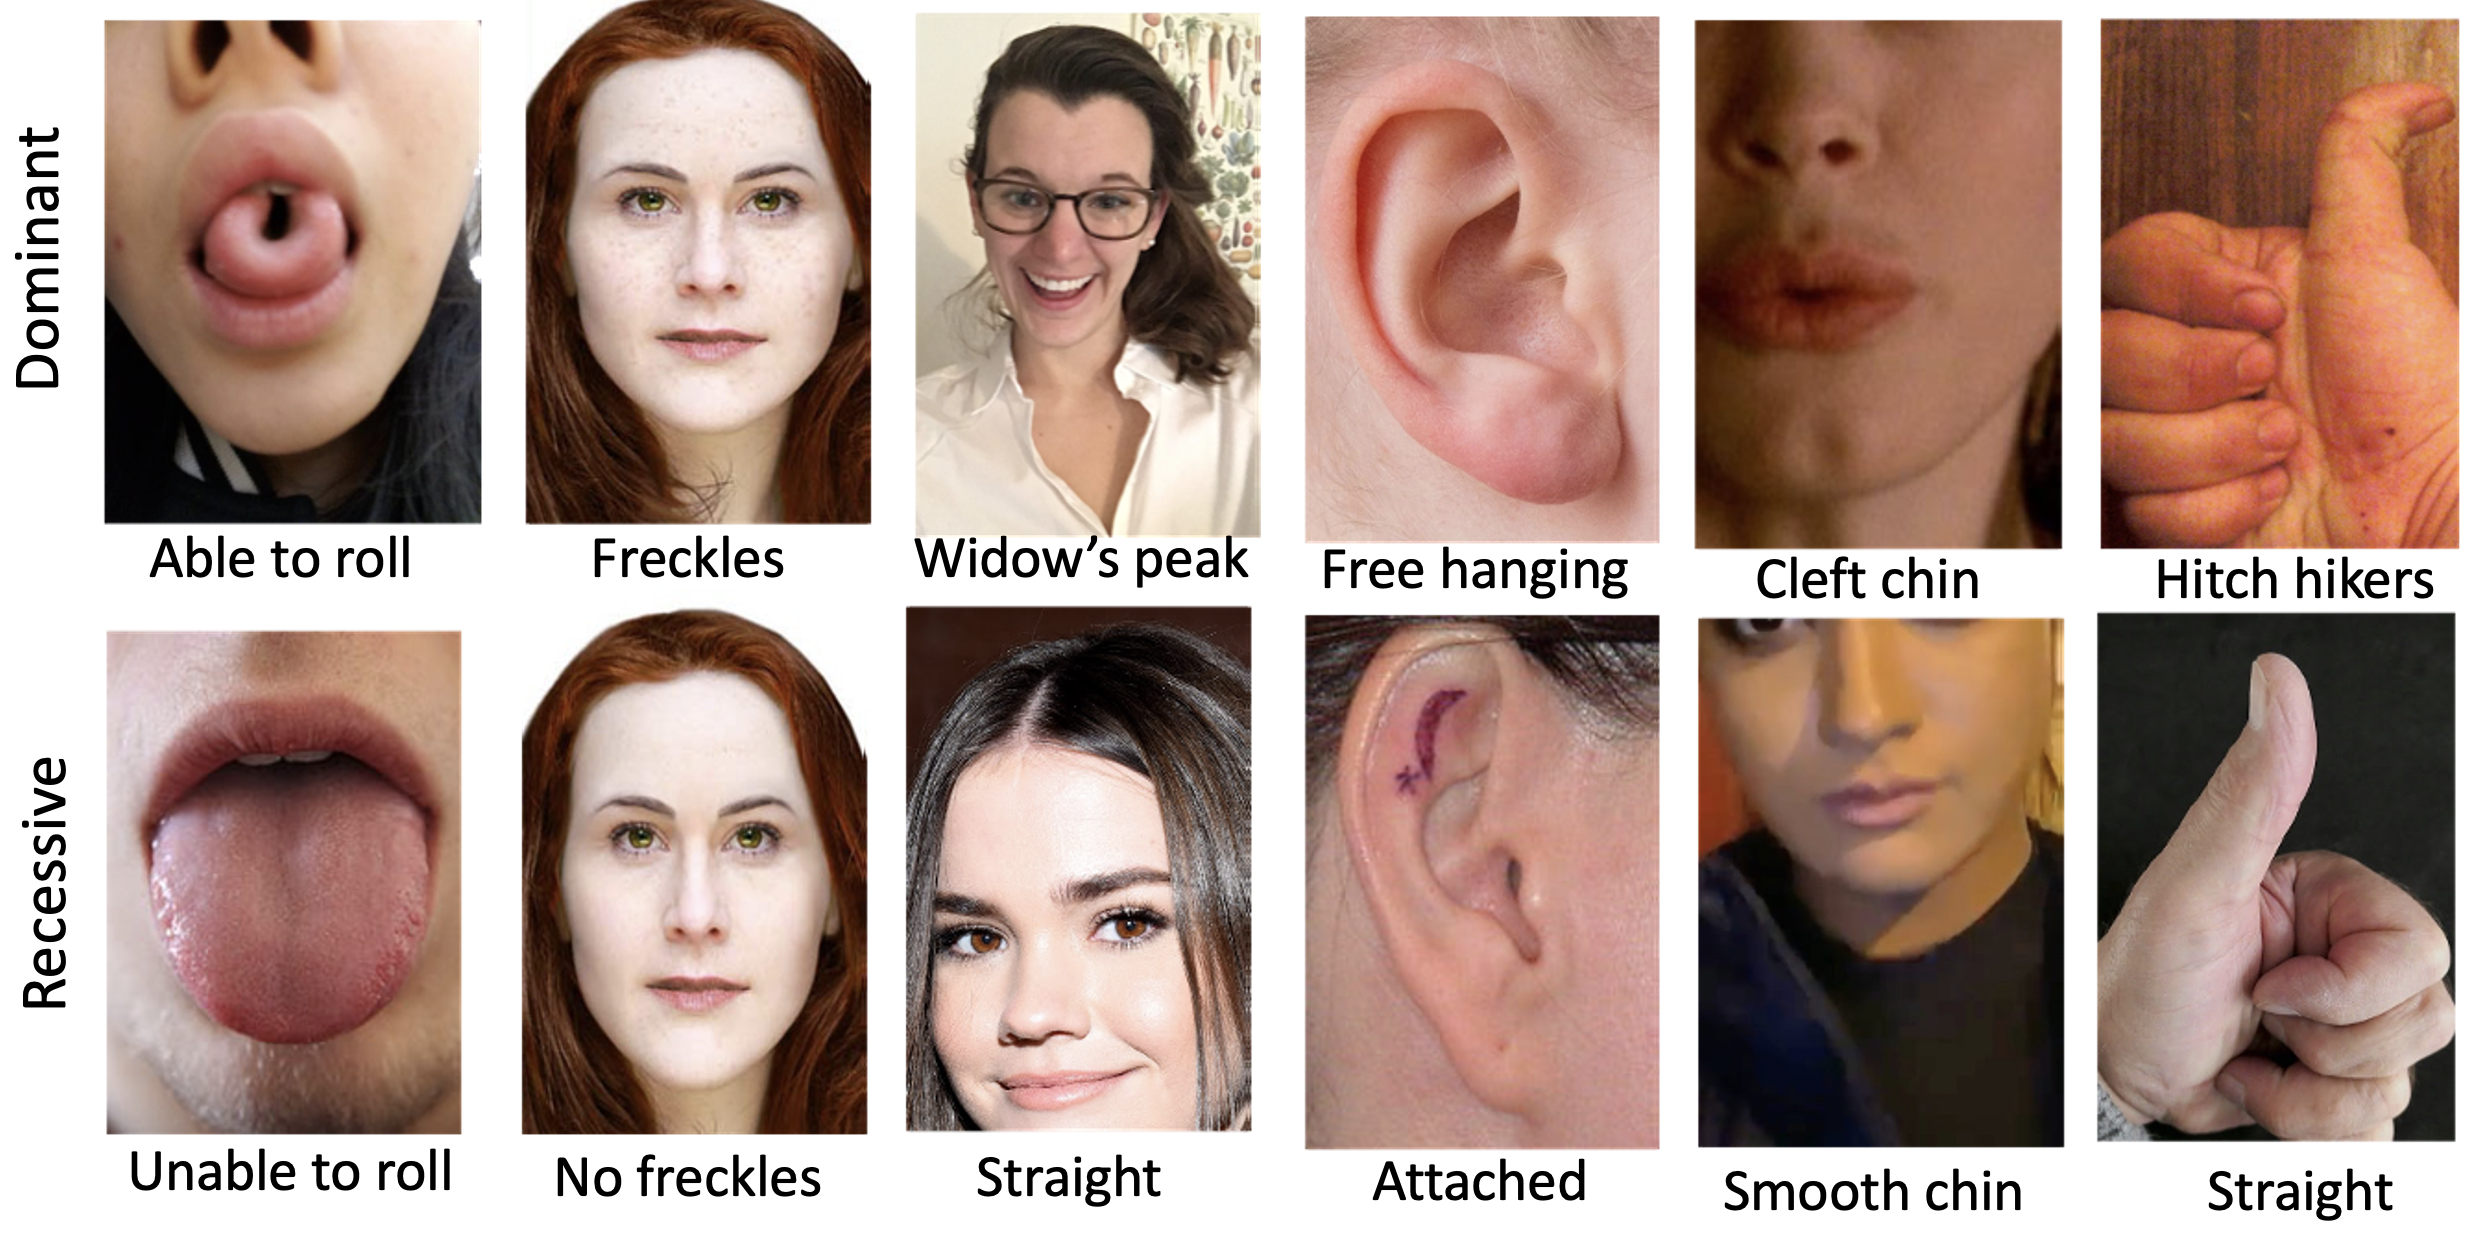 The pictures illustrate some common  dominant and recessive Mendelian traits in humans. Some dominant traits are: tongue roll, freckles, widow's peak, free earlobe, cleft chin and hitchhikers thumb. The recessive traits for the above dominant traits are: no roll, no freckles, straight hairline, attached earlobe, smooth chin and straight thumb respectively.